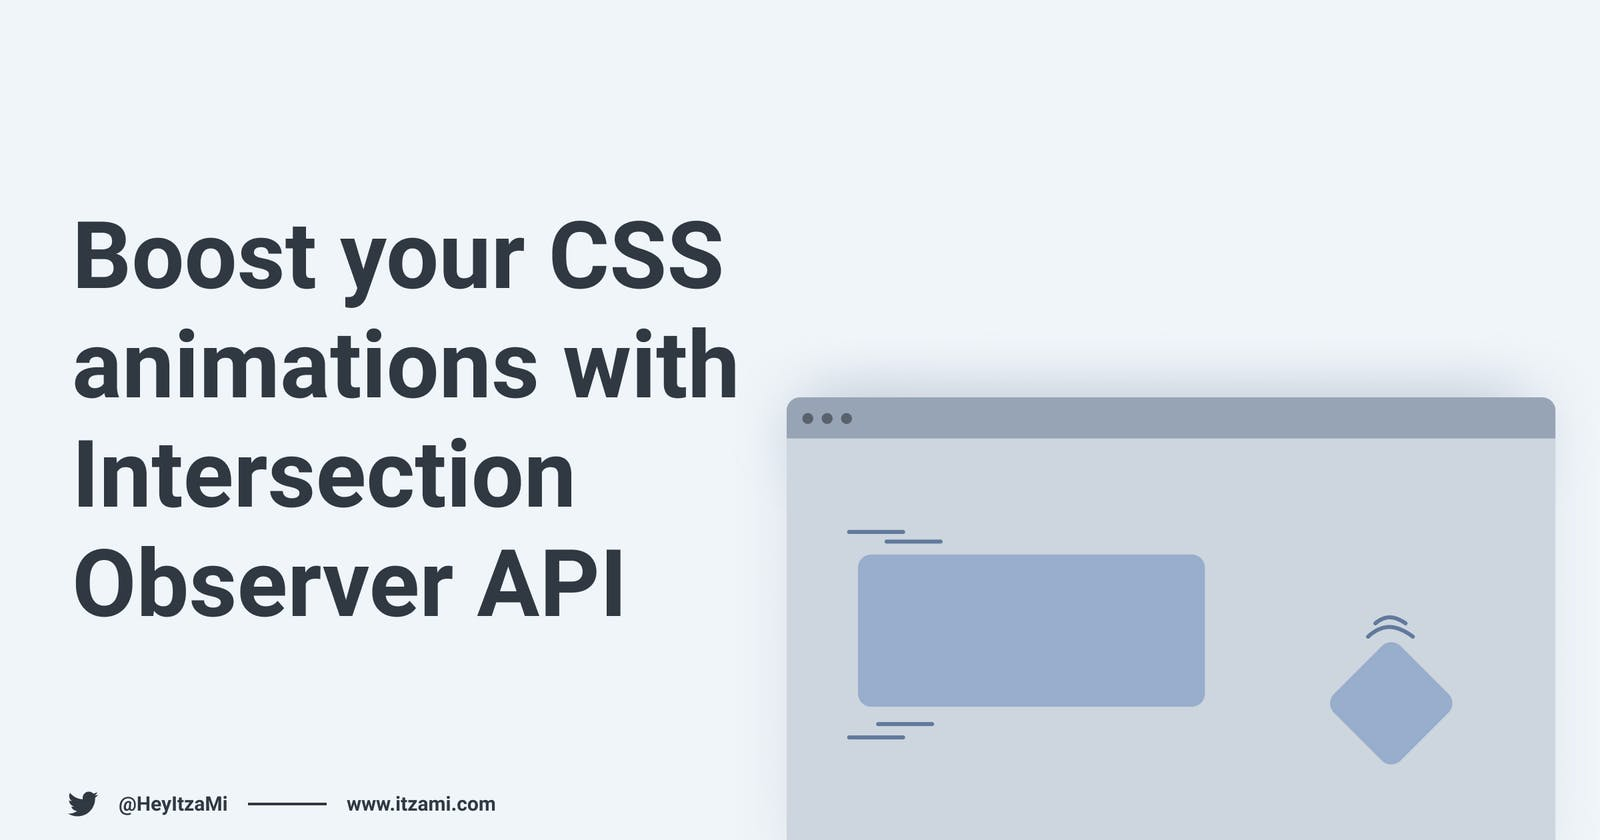 Boost your CSS animations with Intersection Observer API